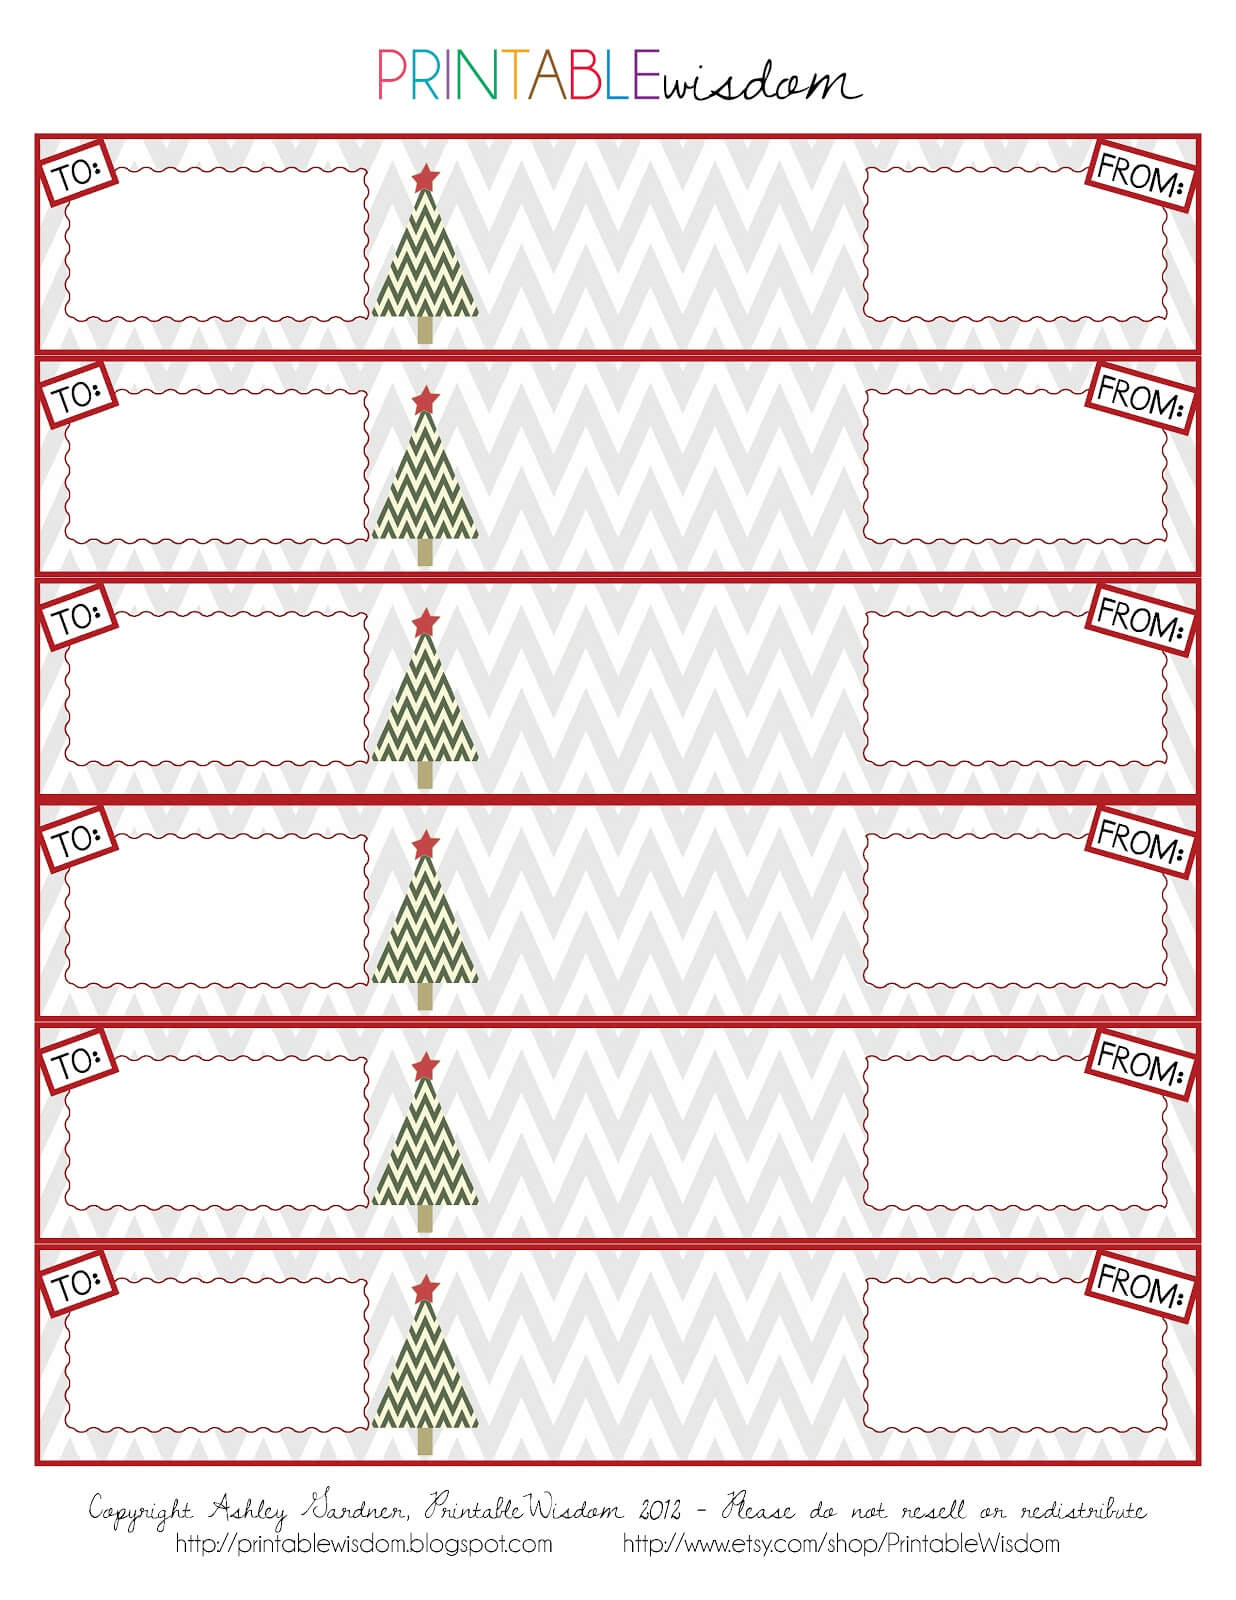 Free Printable Shipping Label Templates Address For Word Pertaining To Free Label Templates For Word